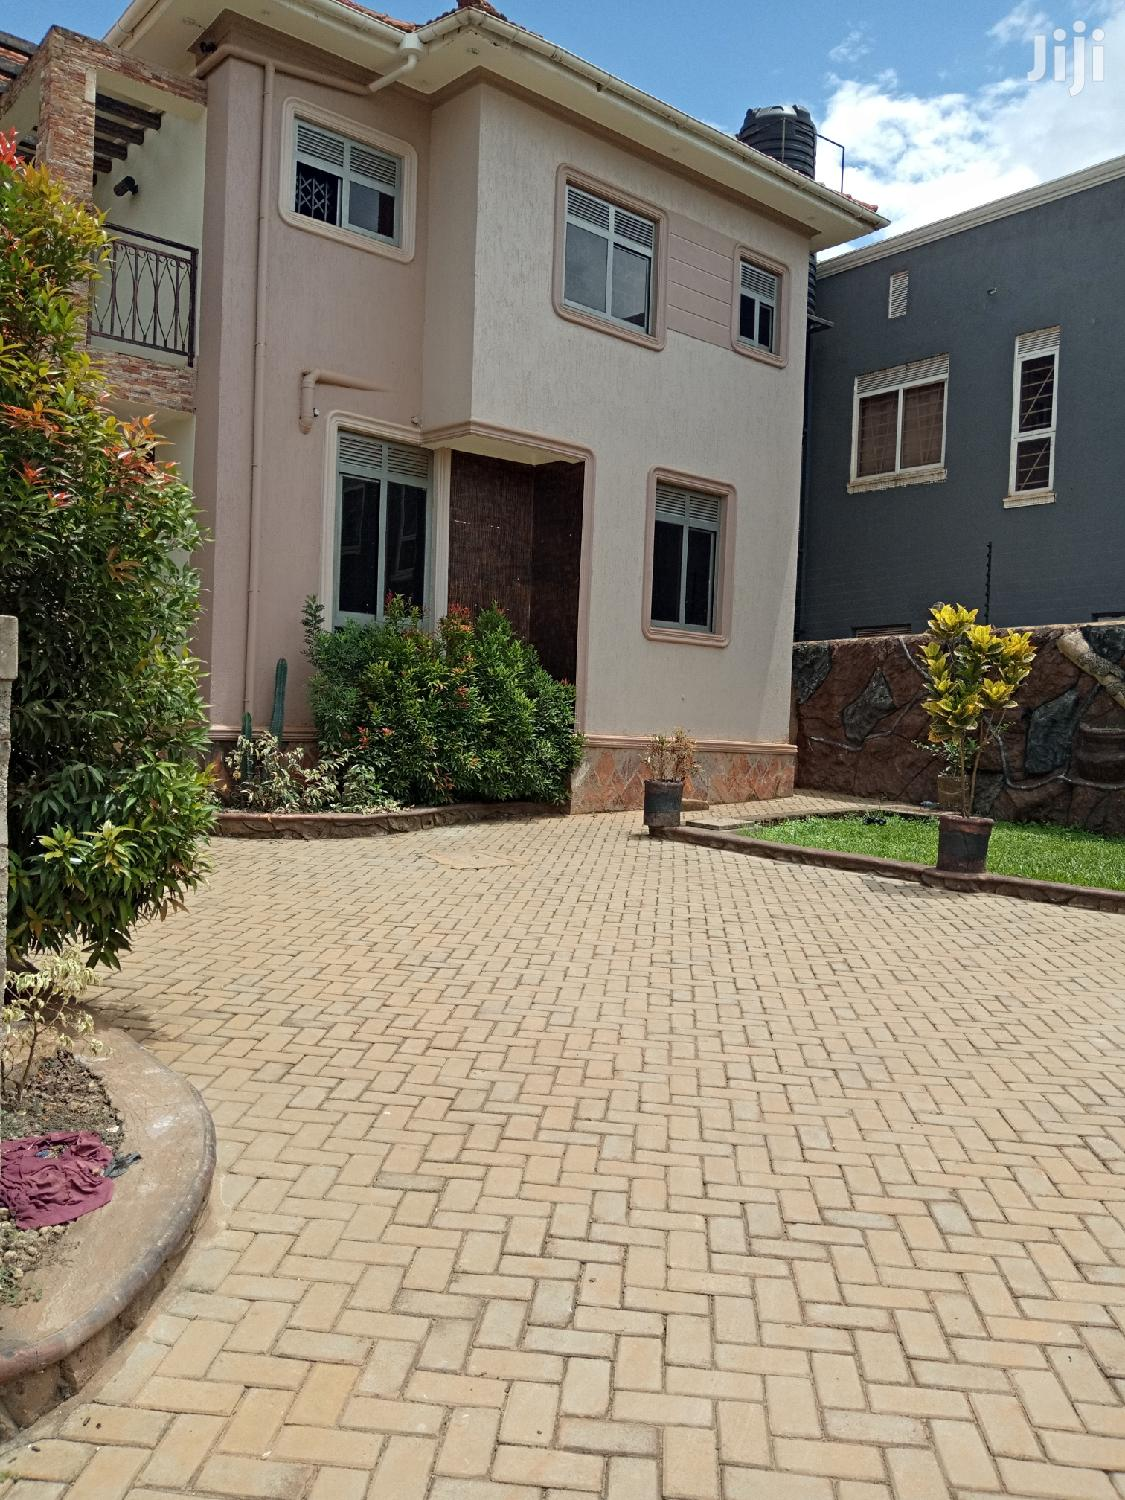 Kira Posh Castle For Sell In Tarmacked Neighborhood | Houses & Apartments For Sale for sale in Kampala, Central Region, Uganda